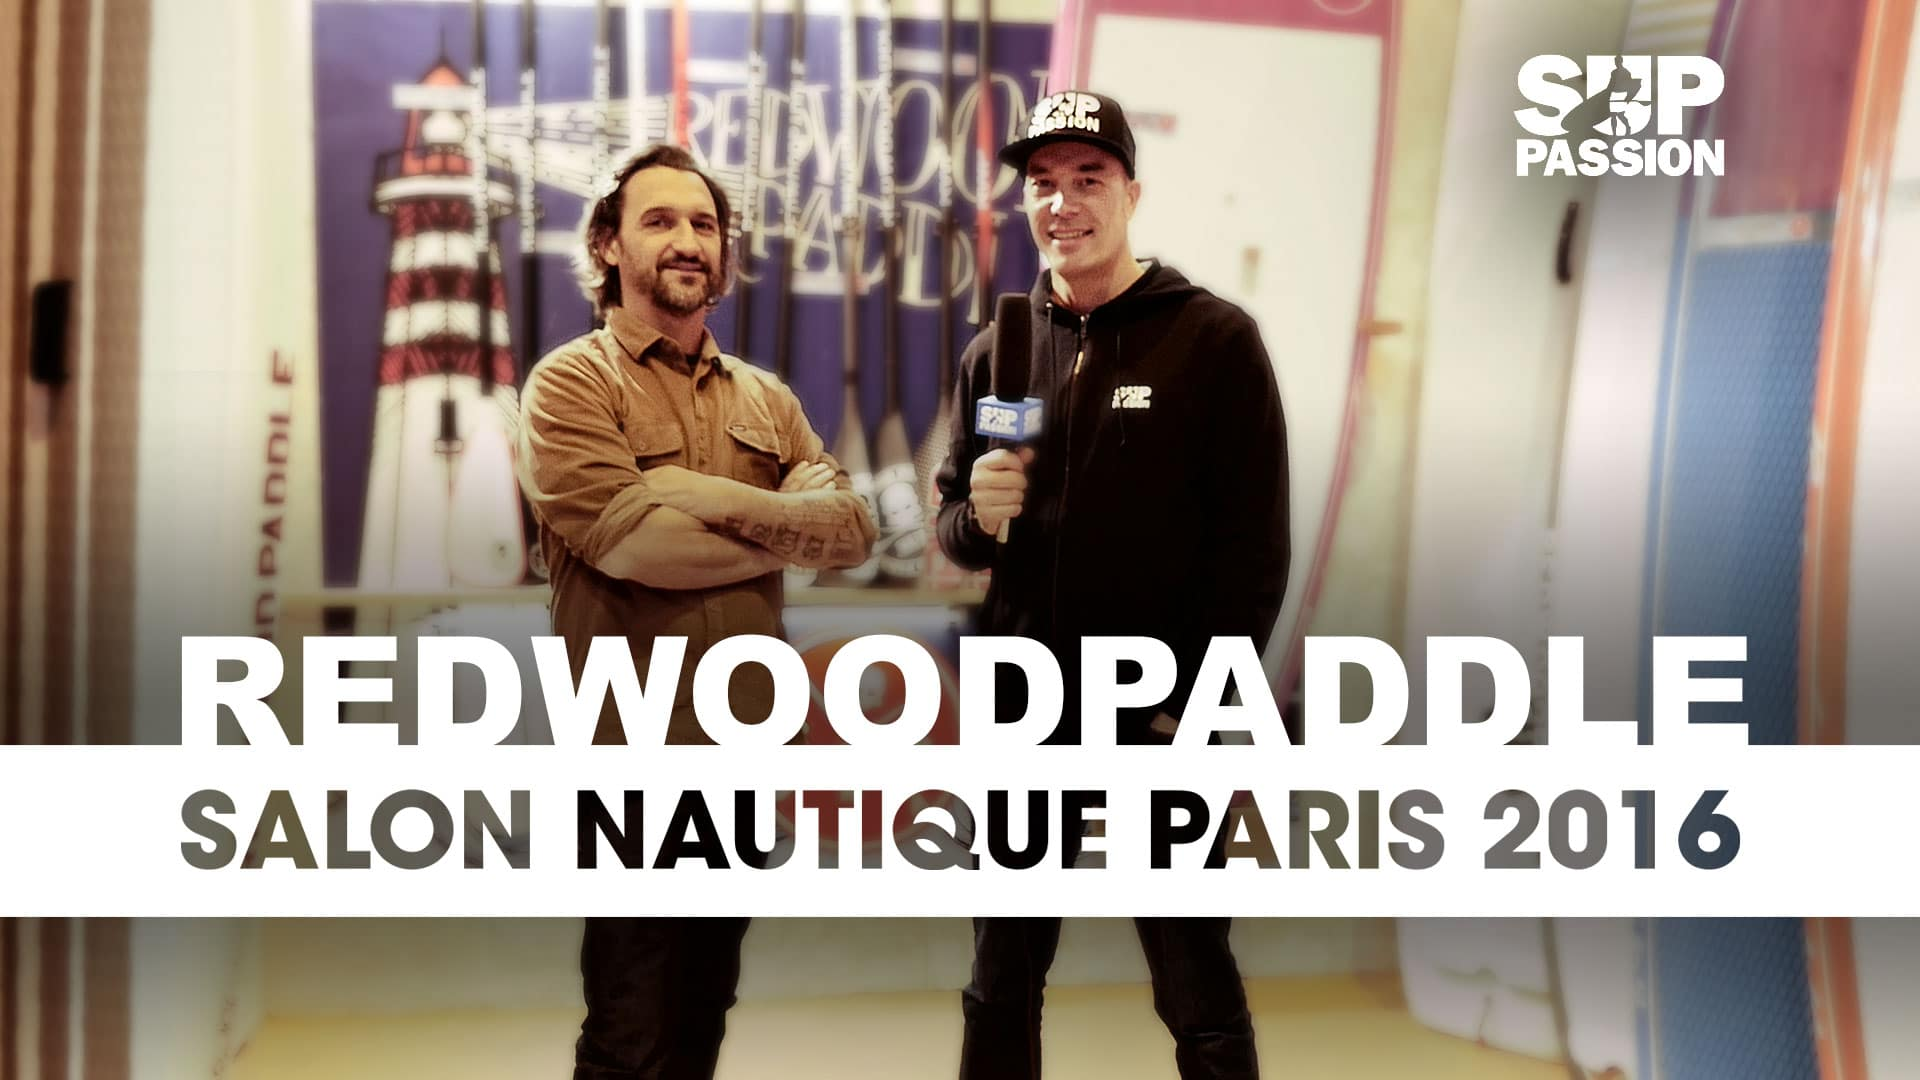 Salon Nautique à Paris Stand Up Paddle Redwoodpaddle Au Salon Nautique De Paris 2016